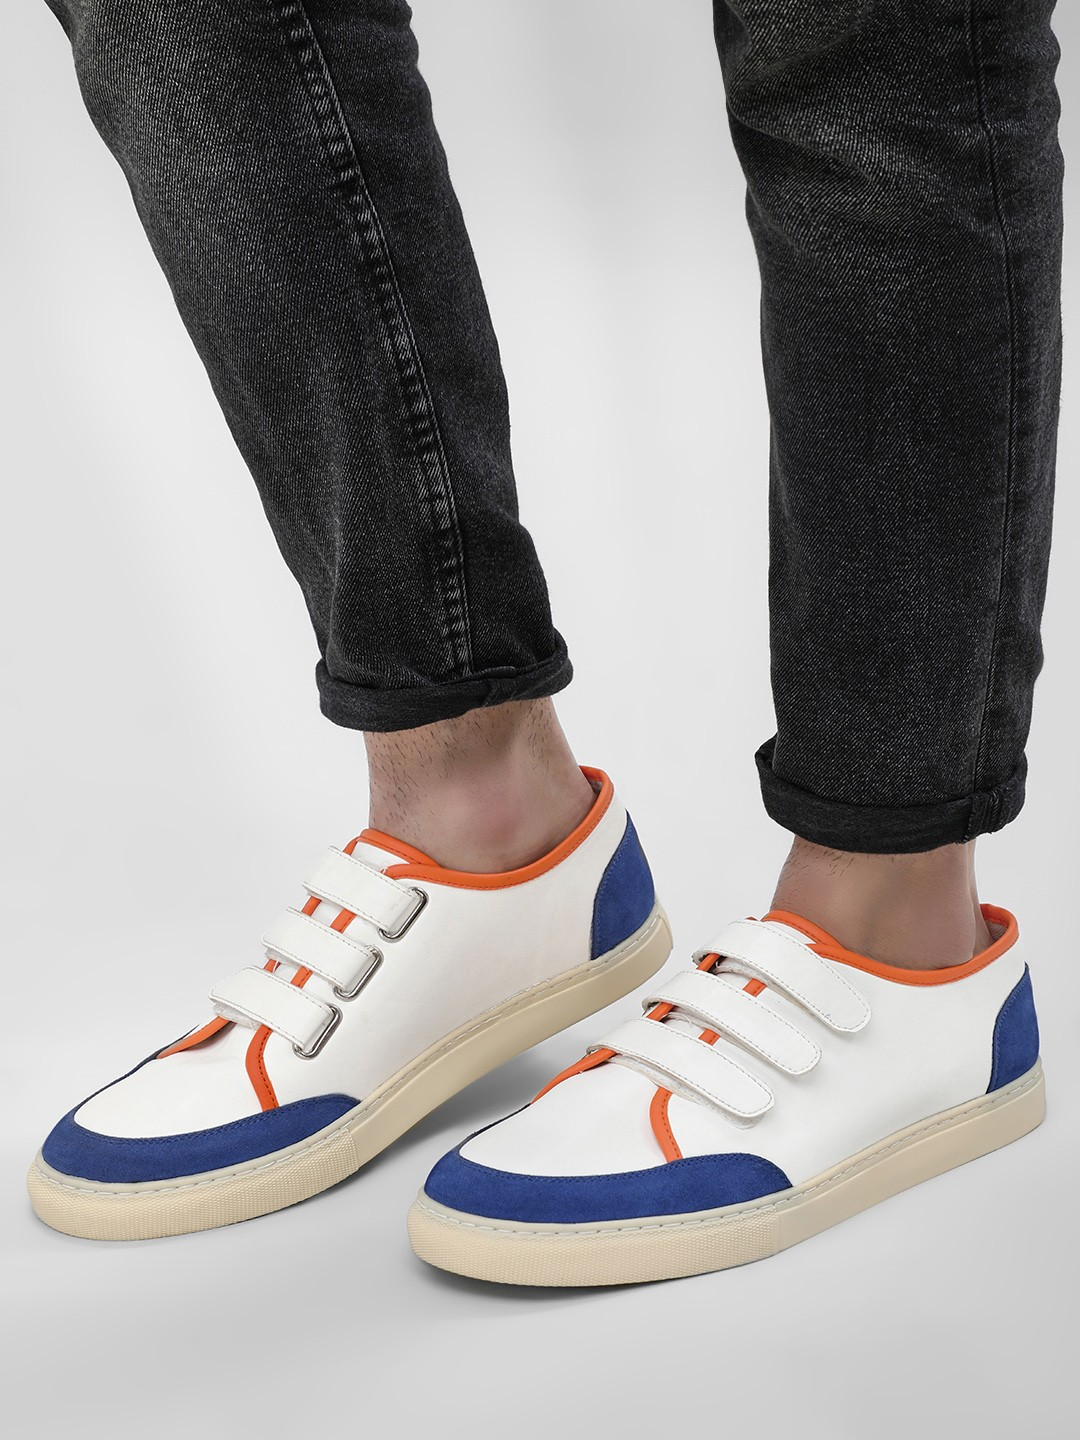 KOOVS White Cup Sole Casual Shoes 1